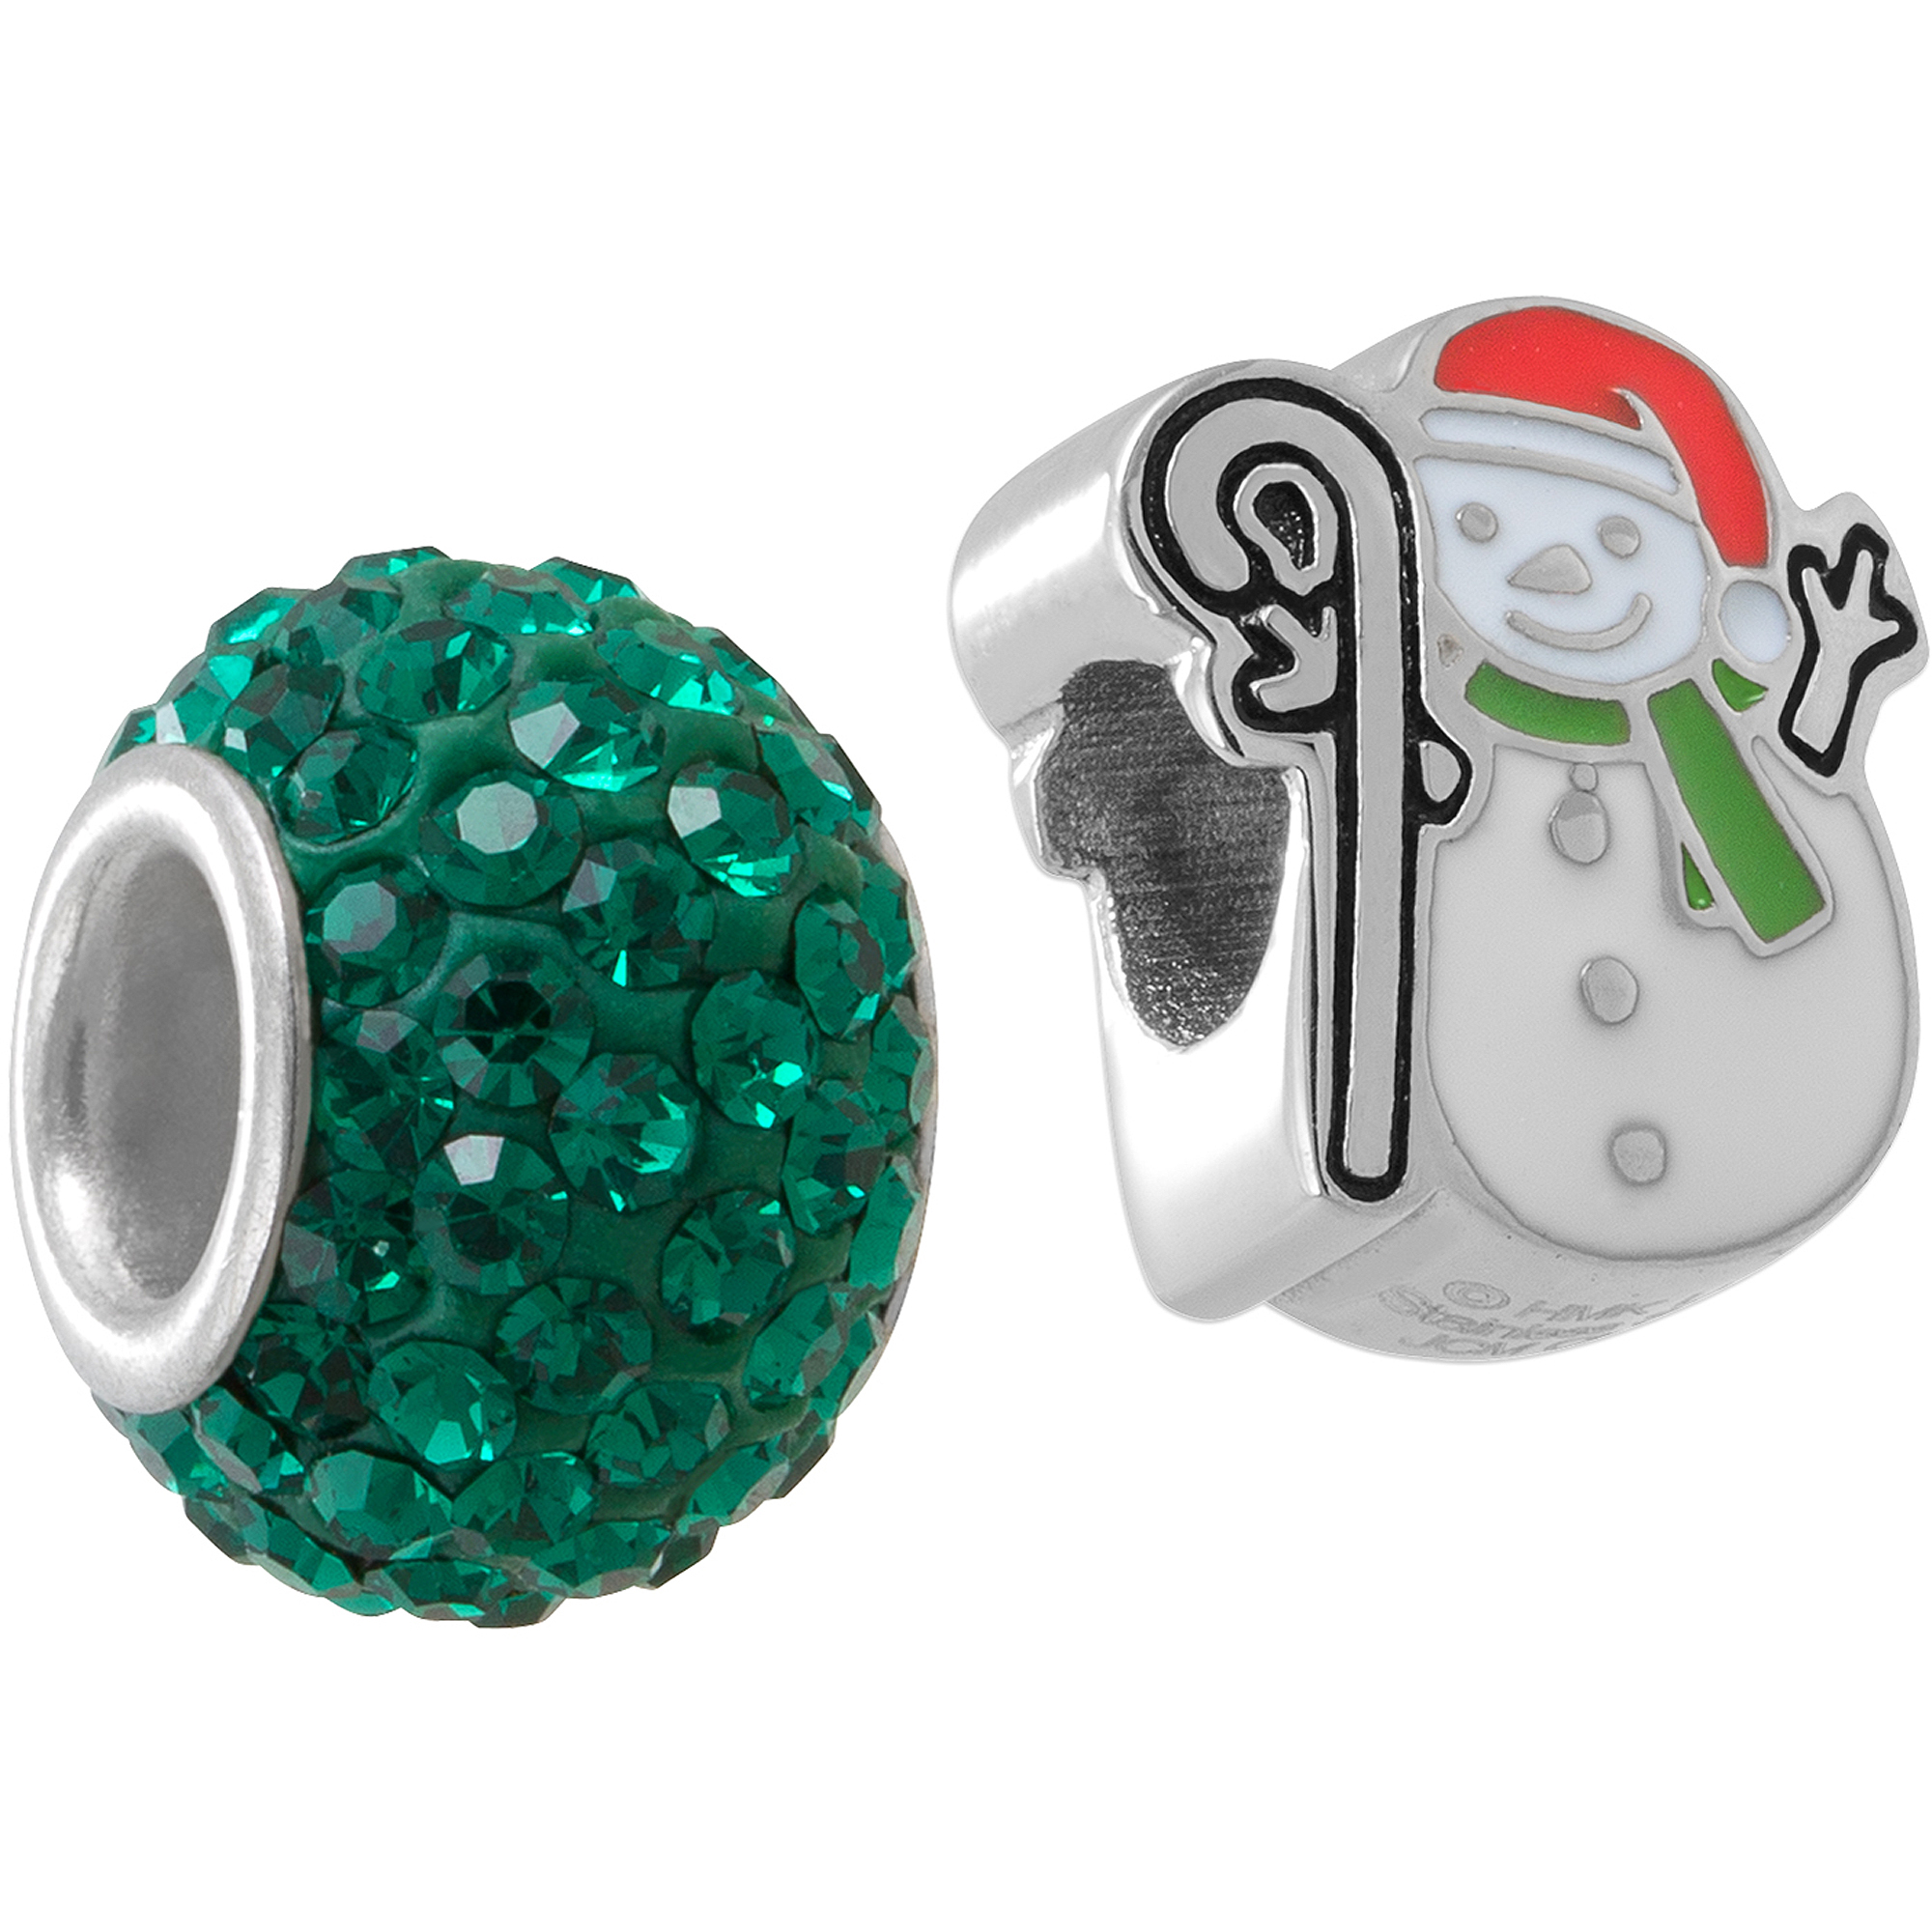 Connections from Hallmark Stainless Steel Snowman and Green Crystal Charm Set